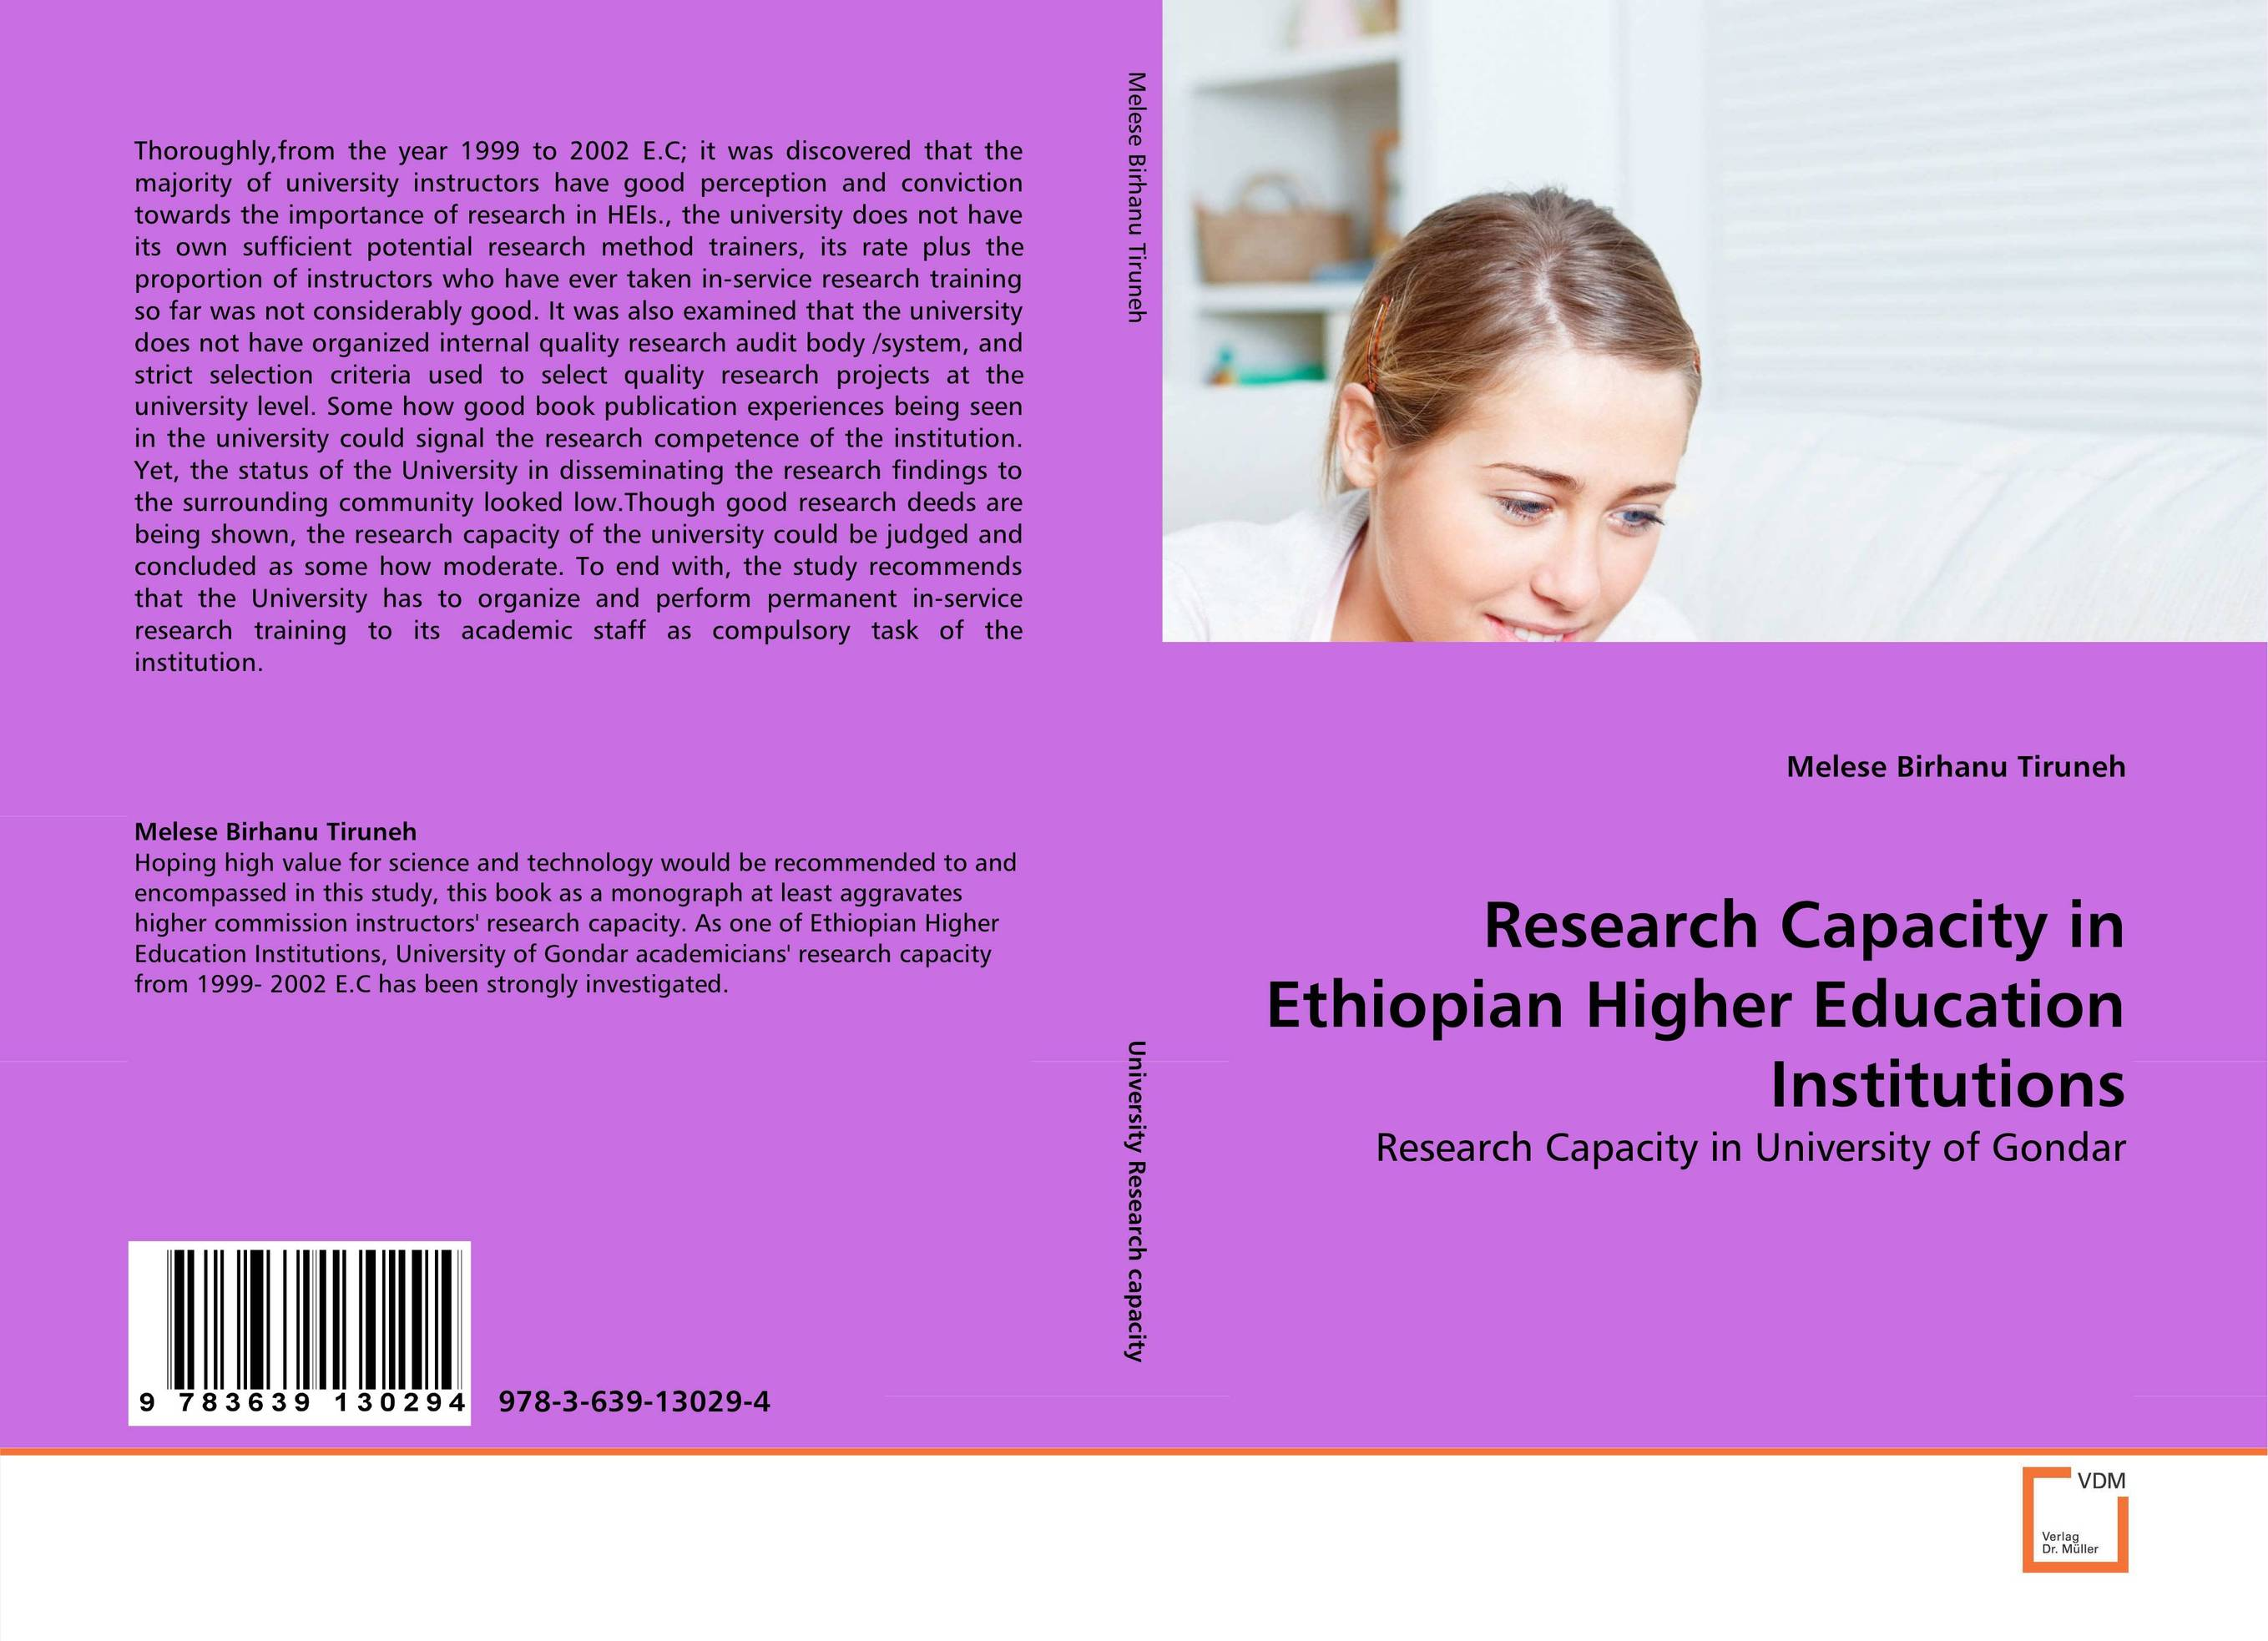 Research Capacity in Ethiopian Higher Education Institutions